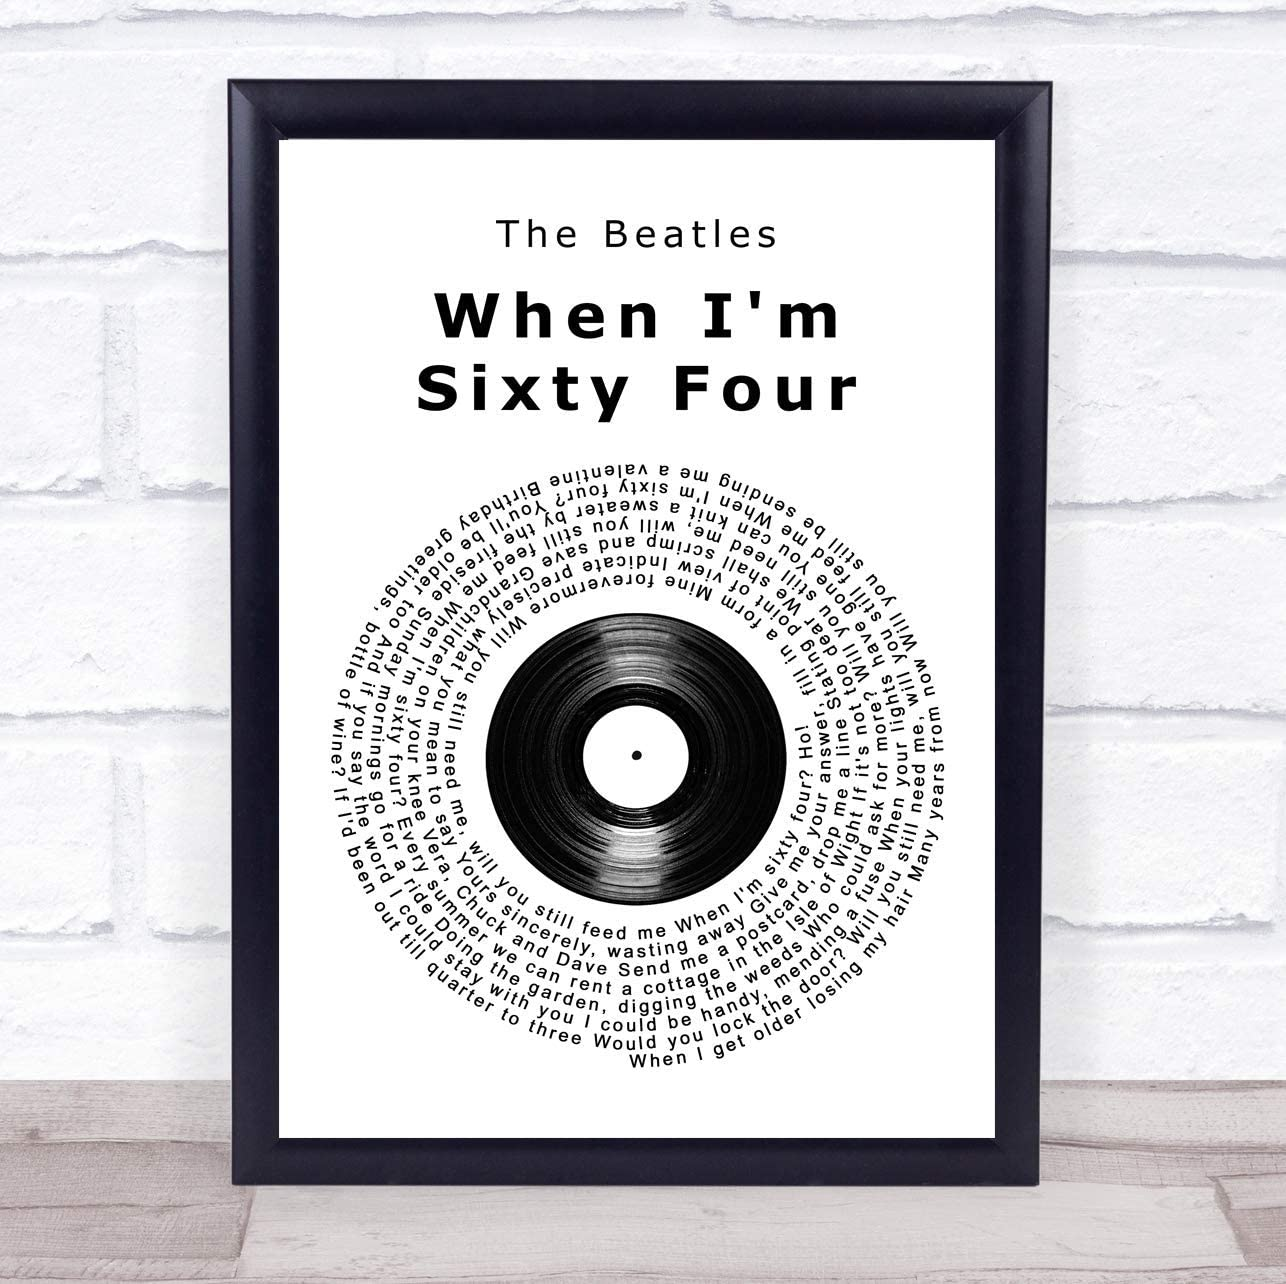 Cedbuyoo The Beatles When Im Sixty Four Vinyl Record Song Lyric Quote Print 10 X 8 Inches Posters Prints